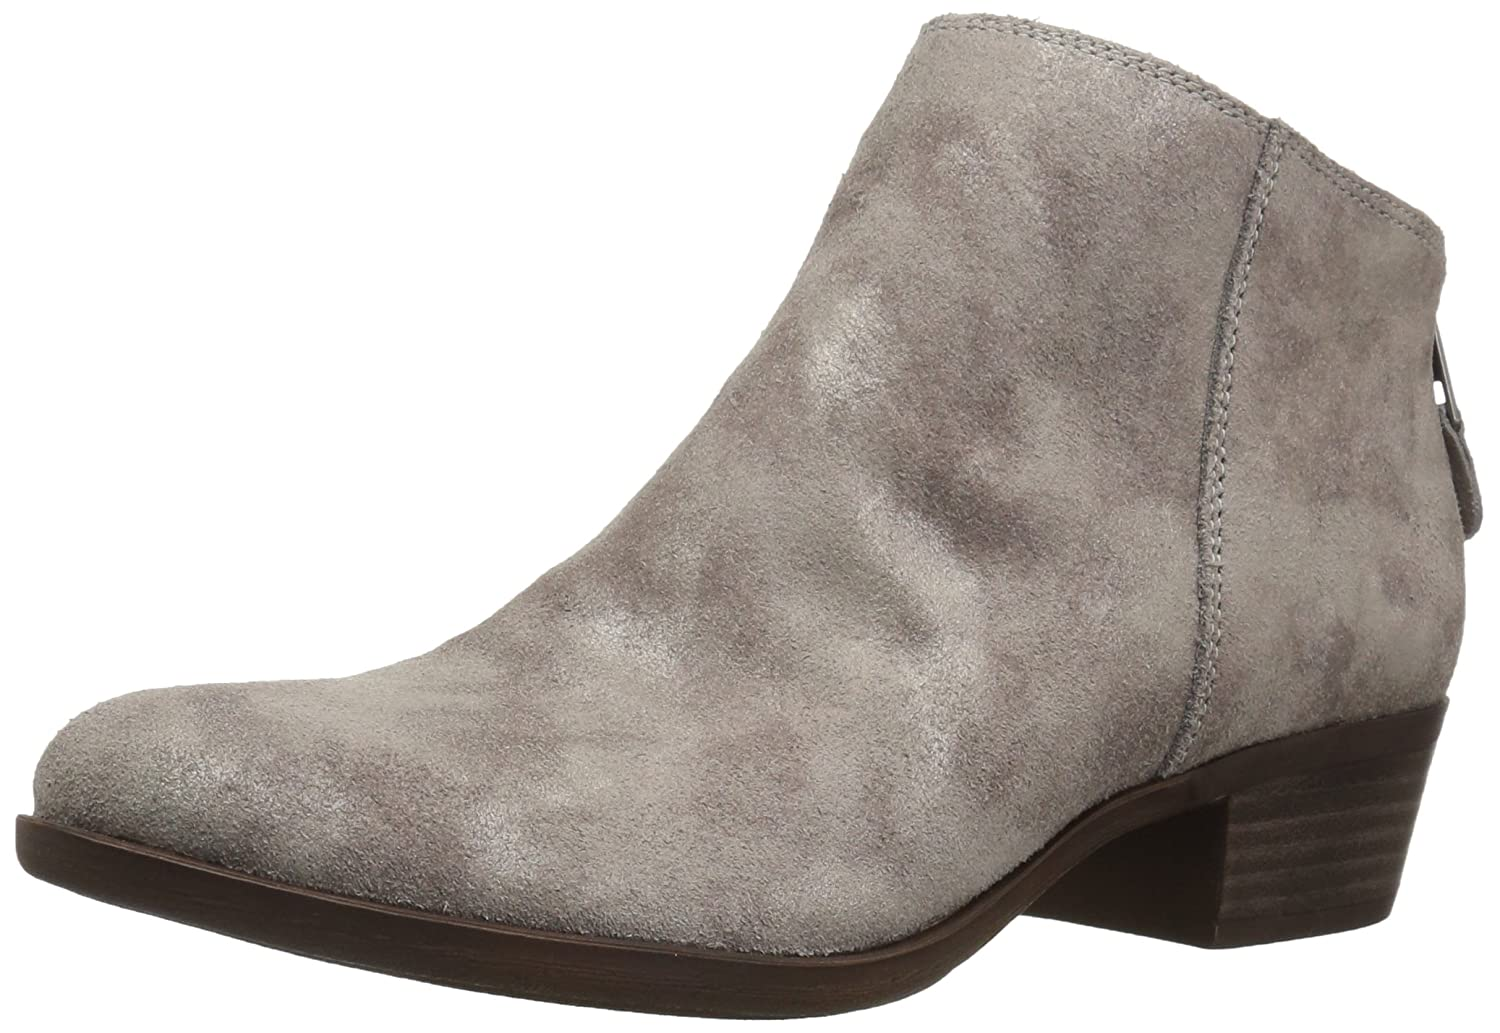 Lucky Brand Women's Bremma Ankle Boot B07C8BPTWX 9.5 M US|Taupe